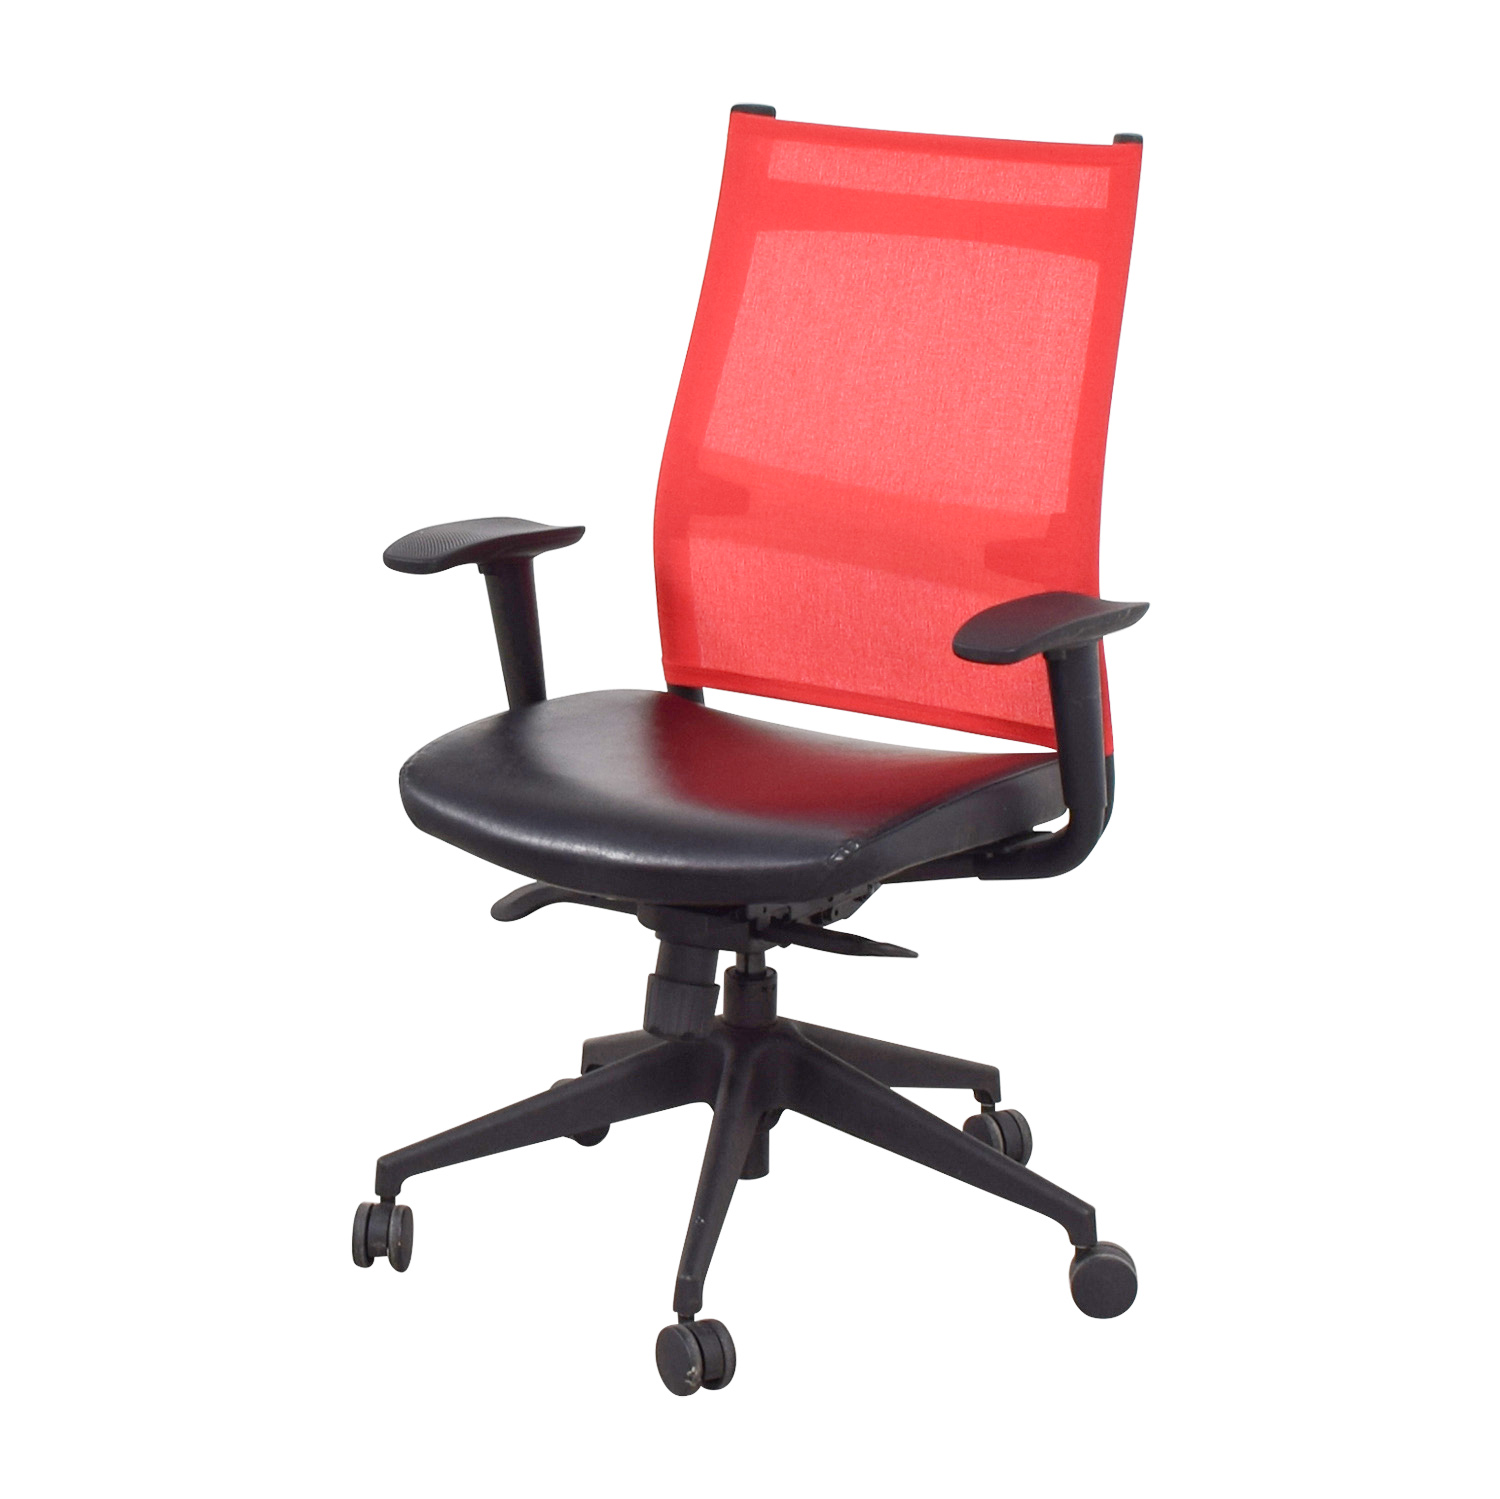 Sit On It Chairs 86 Off Sitonit Sitonit Red Office Chair Chairs